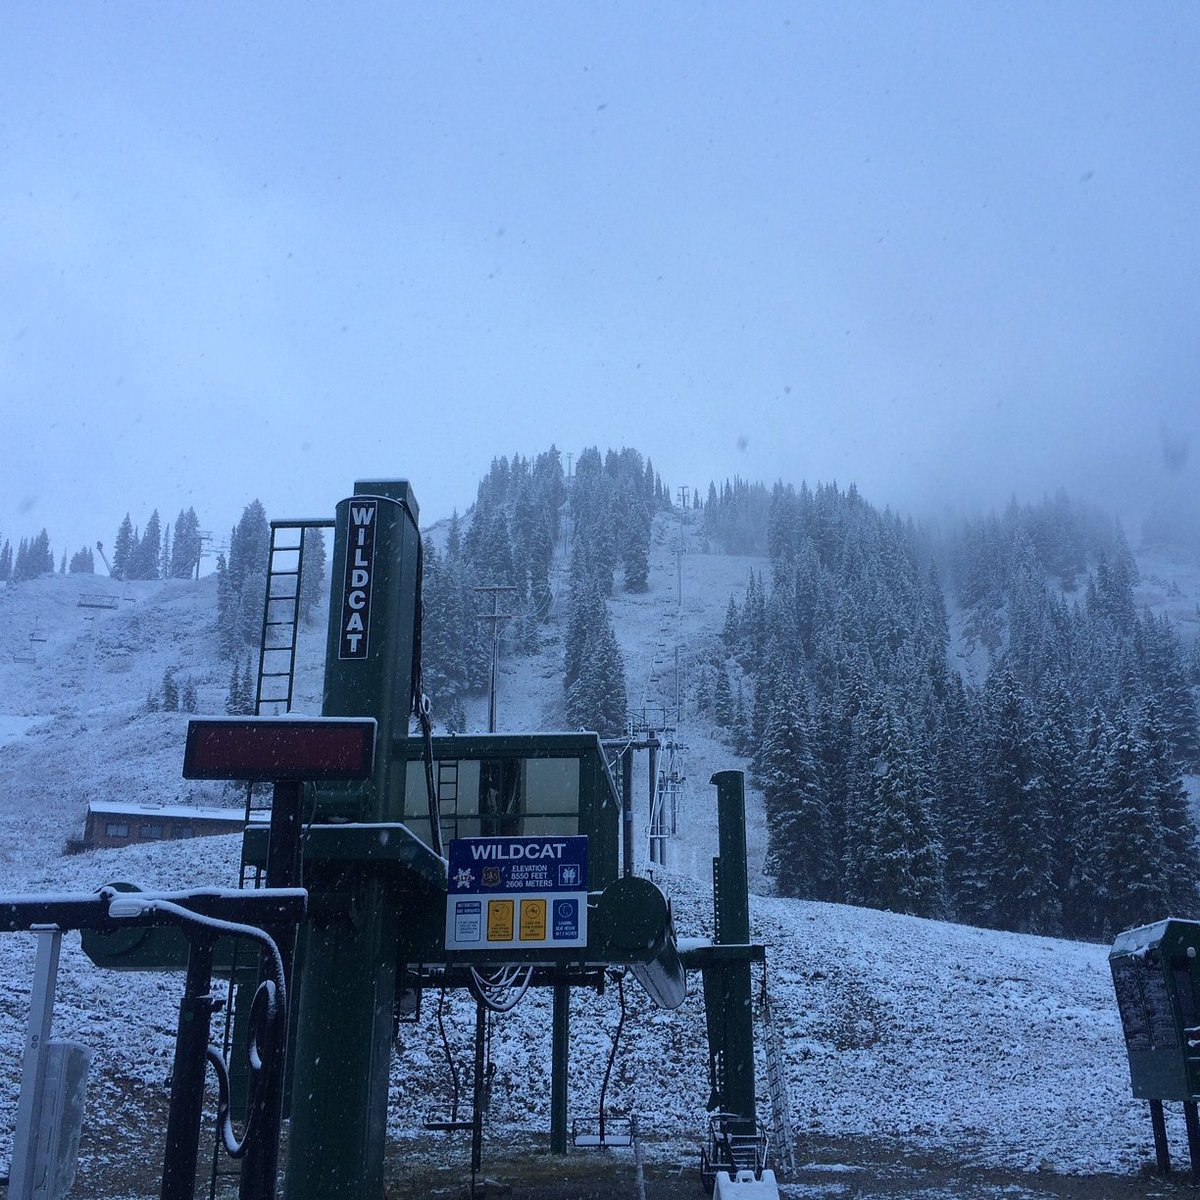 Boom! Welcome snow. Let's party! #alta #ski #snow #stoked #winter https://t.co/pFaOrU47qT